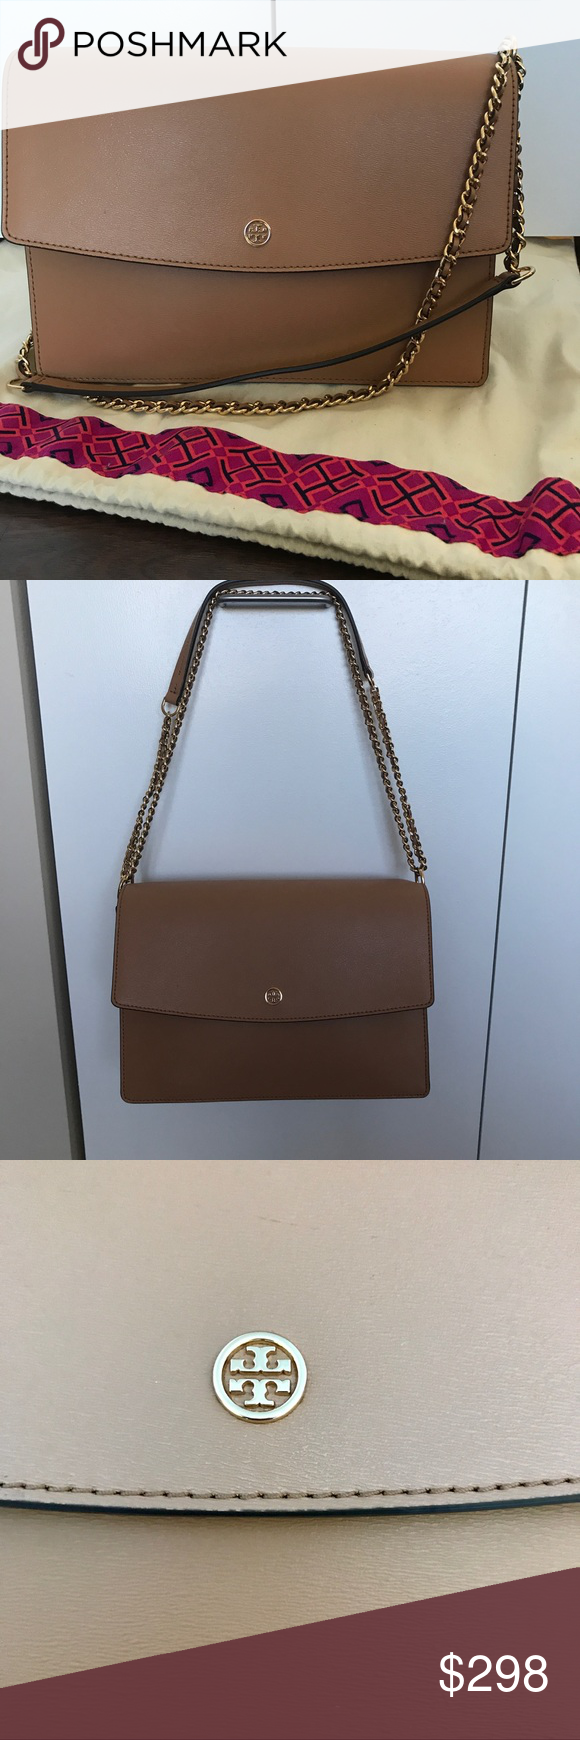 4a1ae29f95a Tory Burch Parker Convertible Large Shoulder Bag Tory Burch Parker  Convertible Large Shoulder Bag in Cardamom Royal Navy EUC. No sign of wear   like new!